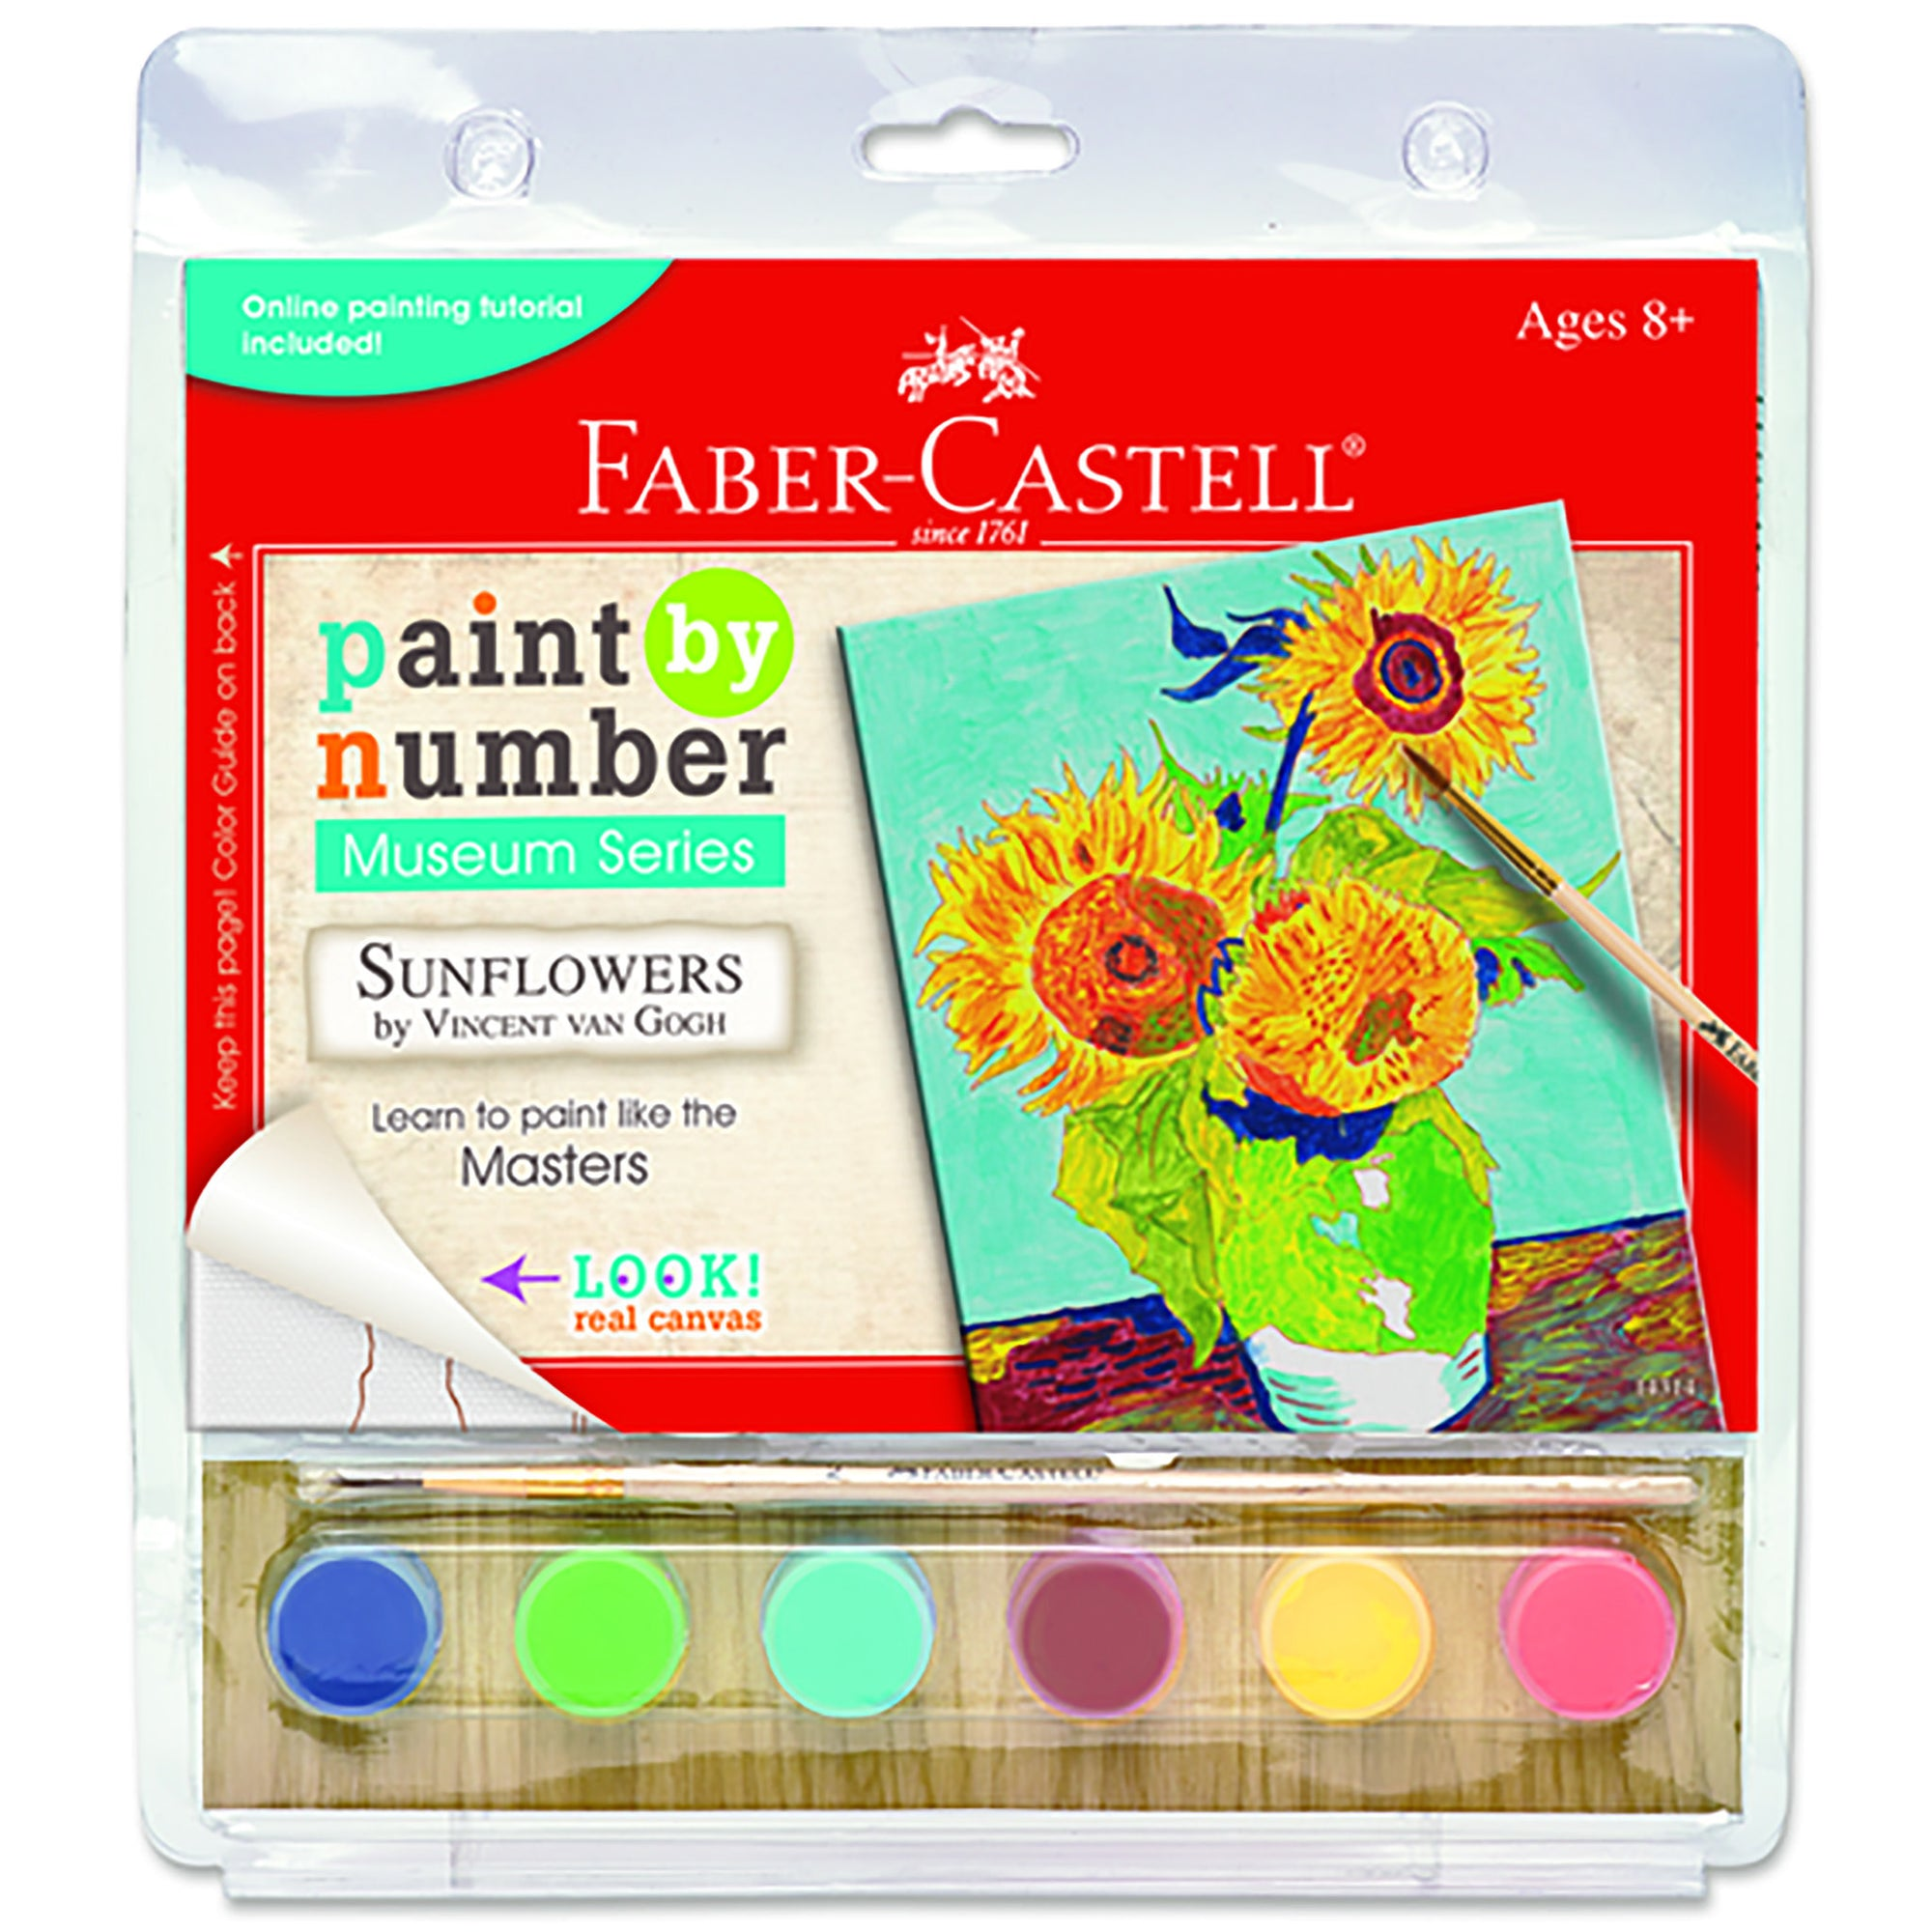 Paint by Number Guided Art Set- Sunflowers by Vincent Van Gogh | Getty Store